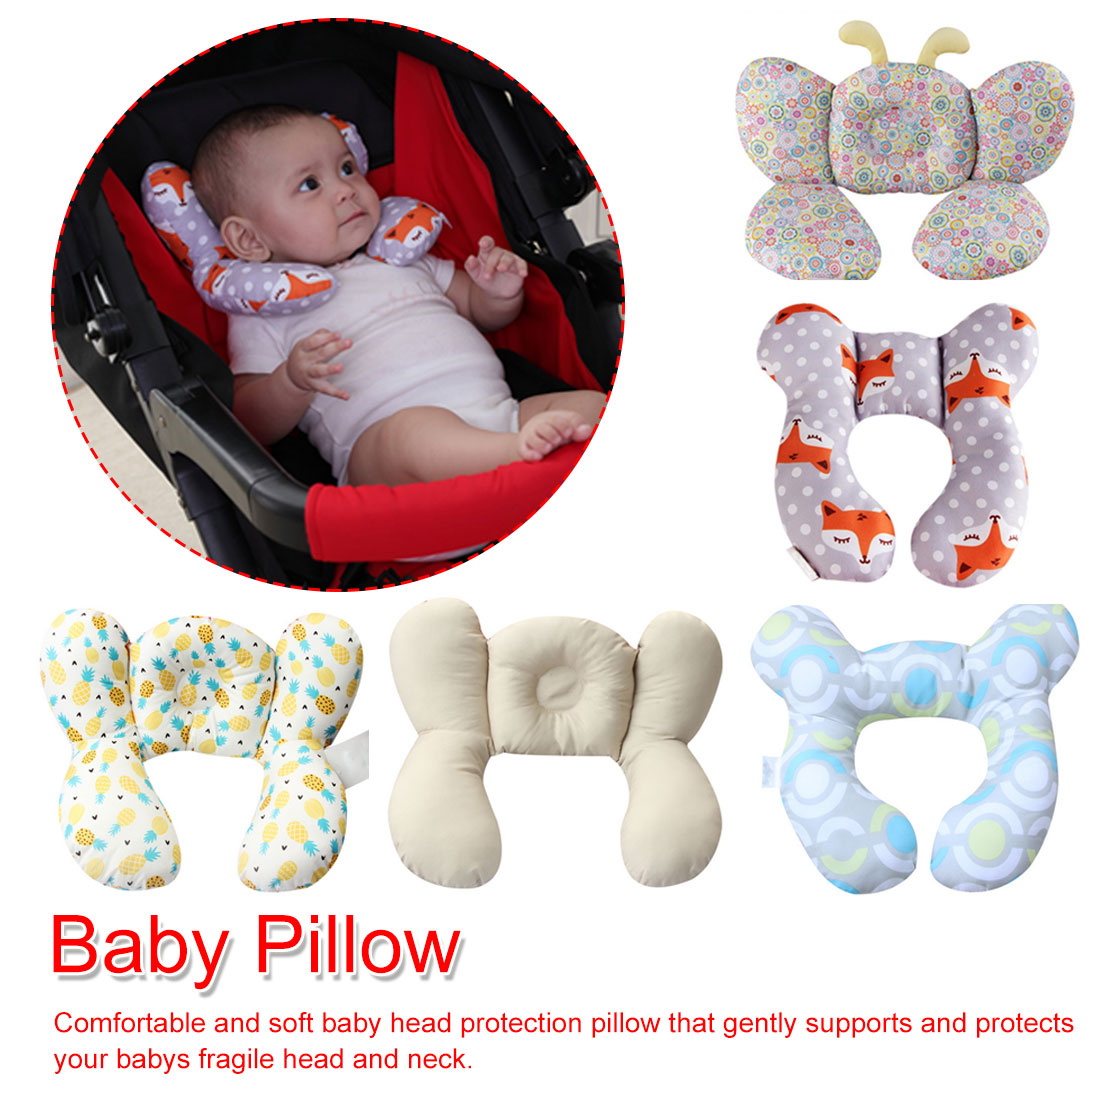 Baby Support Cushion Cotton Baby Pillow Stroller Equipment Safety Seat Pillows Baby Infant Neck Care Pillow